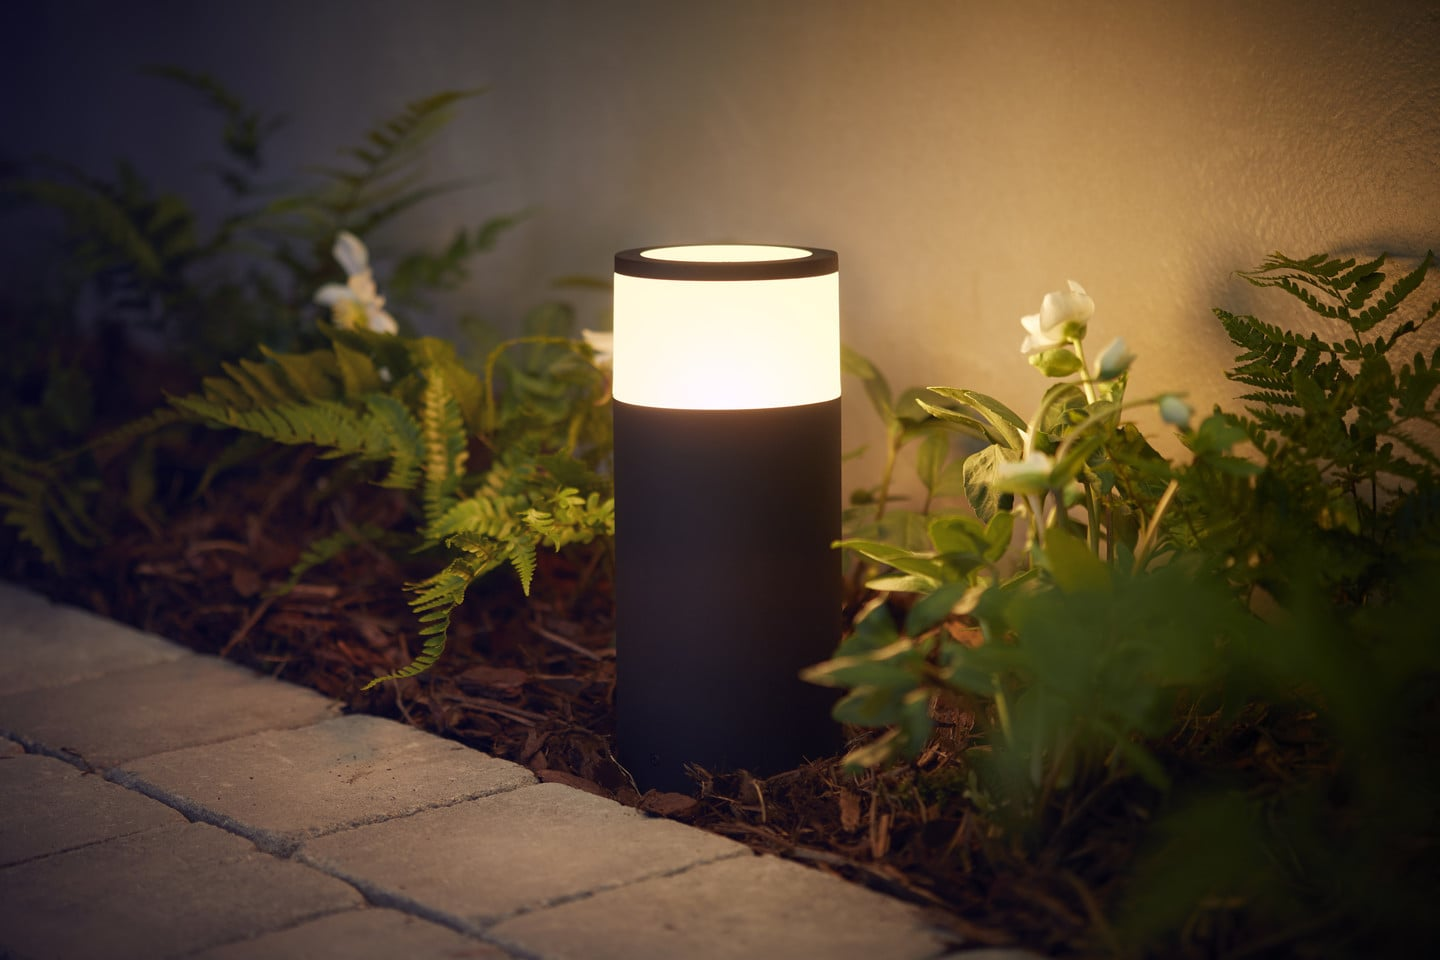 Philips Hue Reveals Pricing, Details for New Outdoor Light Line-Up